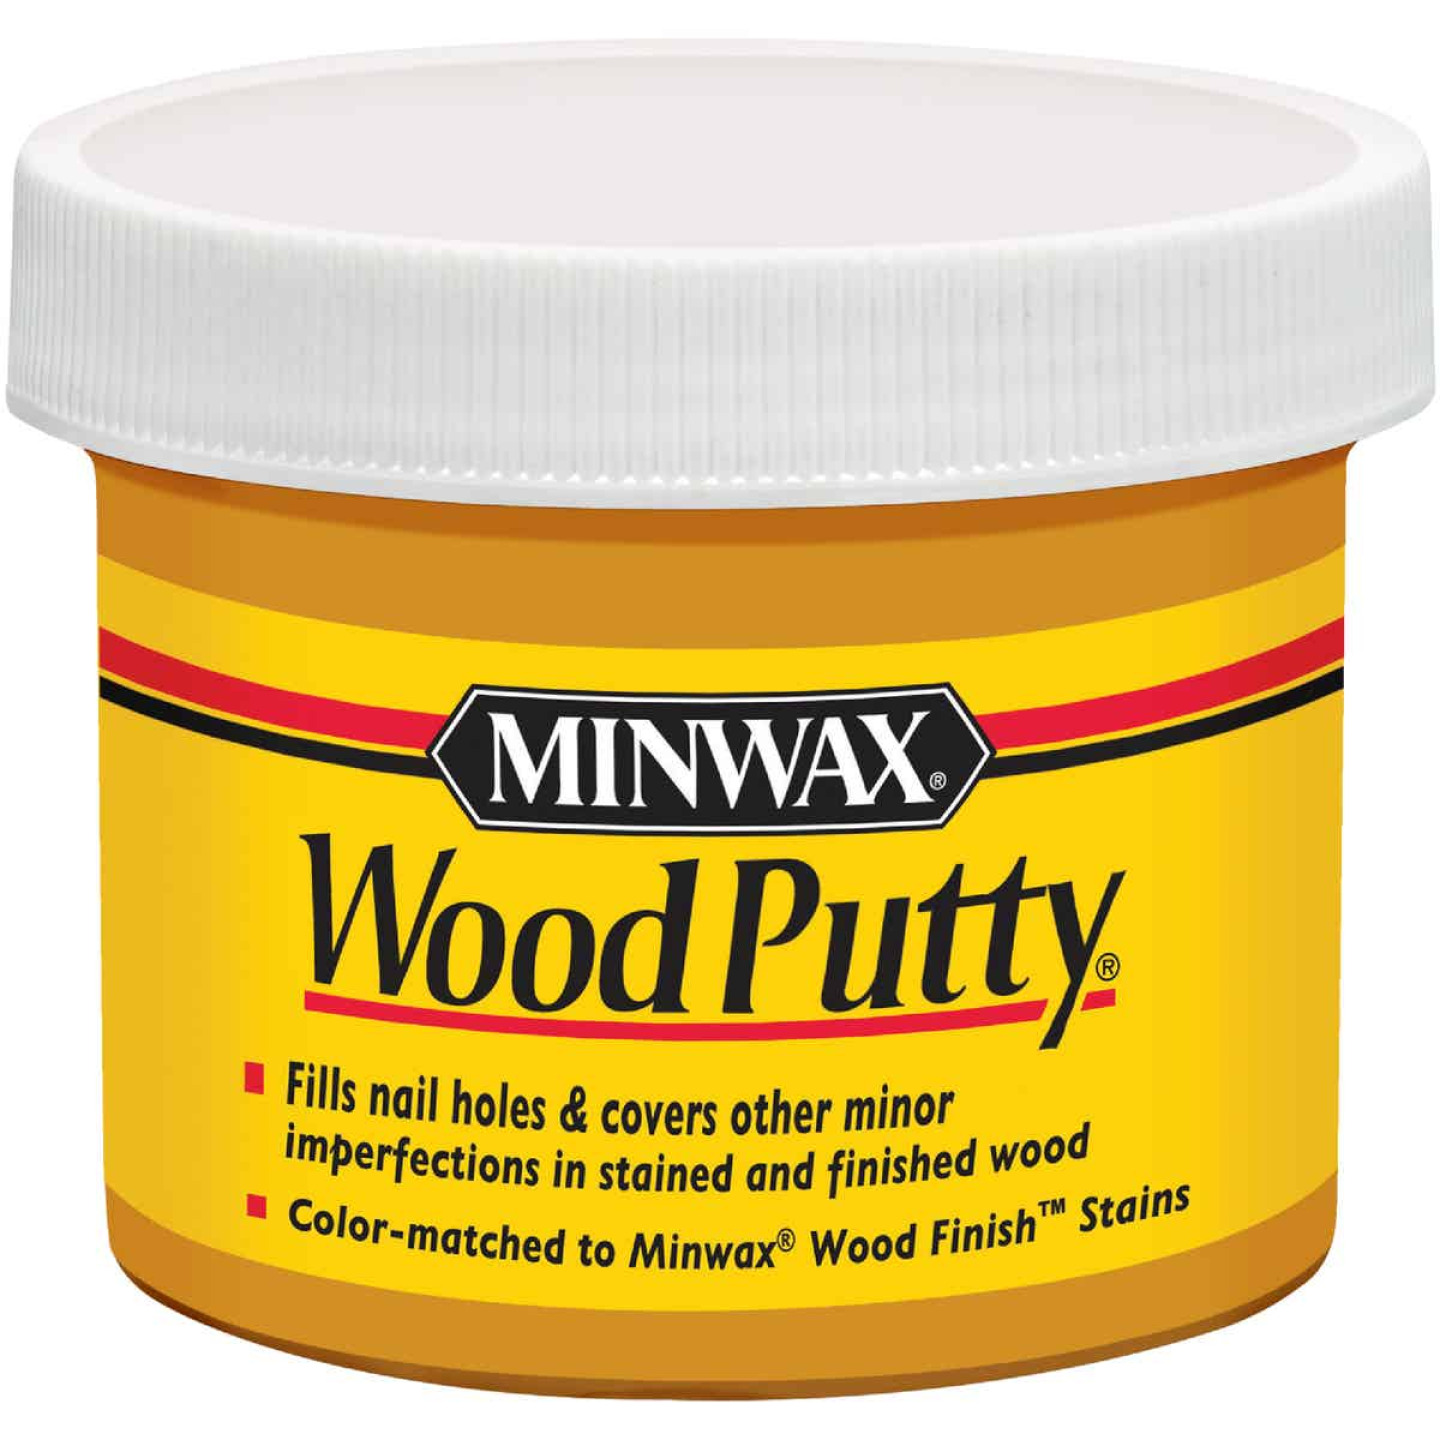 Minwax 3.75 Oz. Colonial Maple Wood Putty Image 1